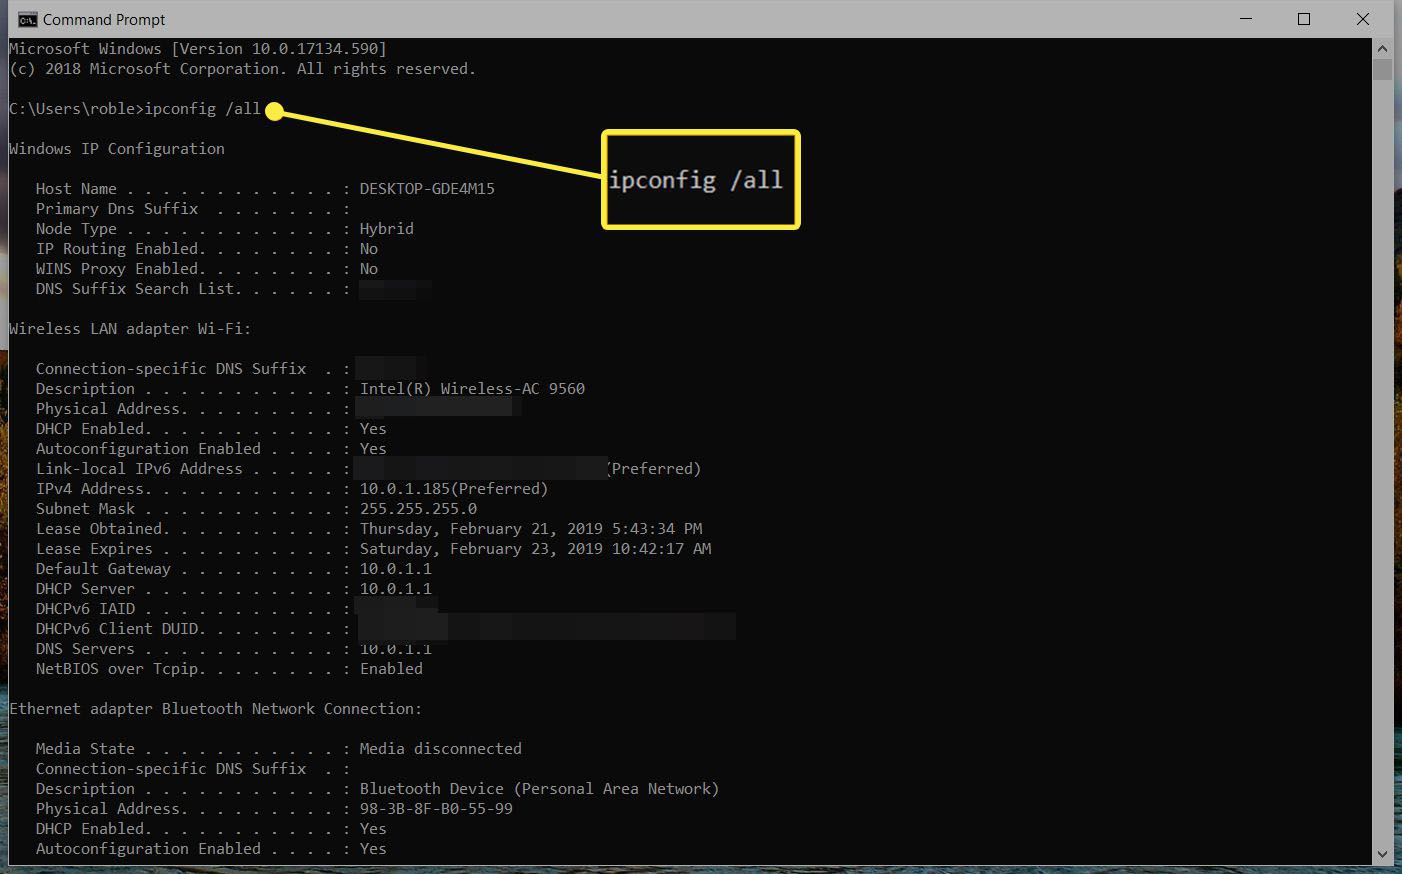 screenshot ipconfig /all command and result in Command Prompt via Windows 10